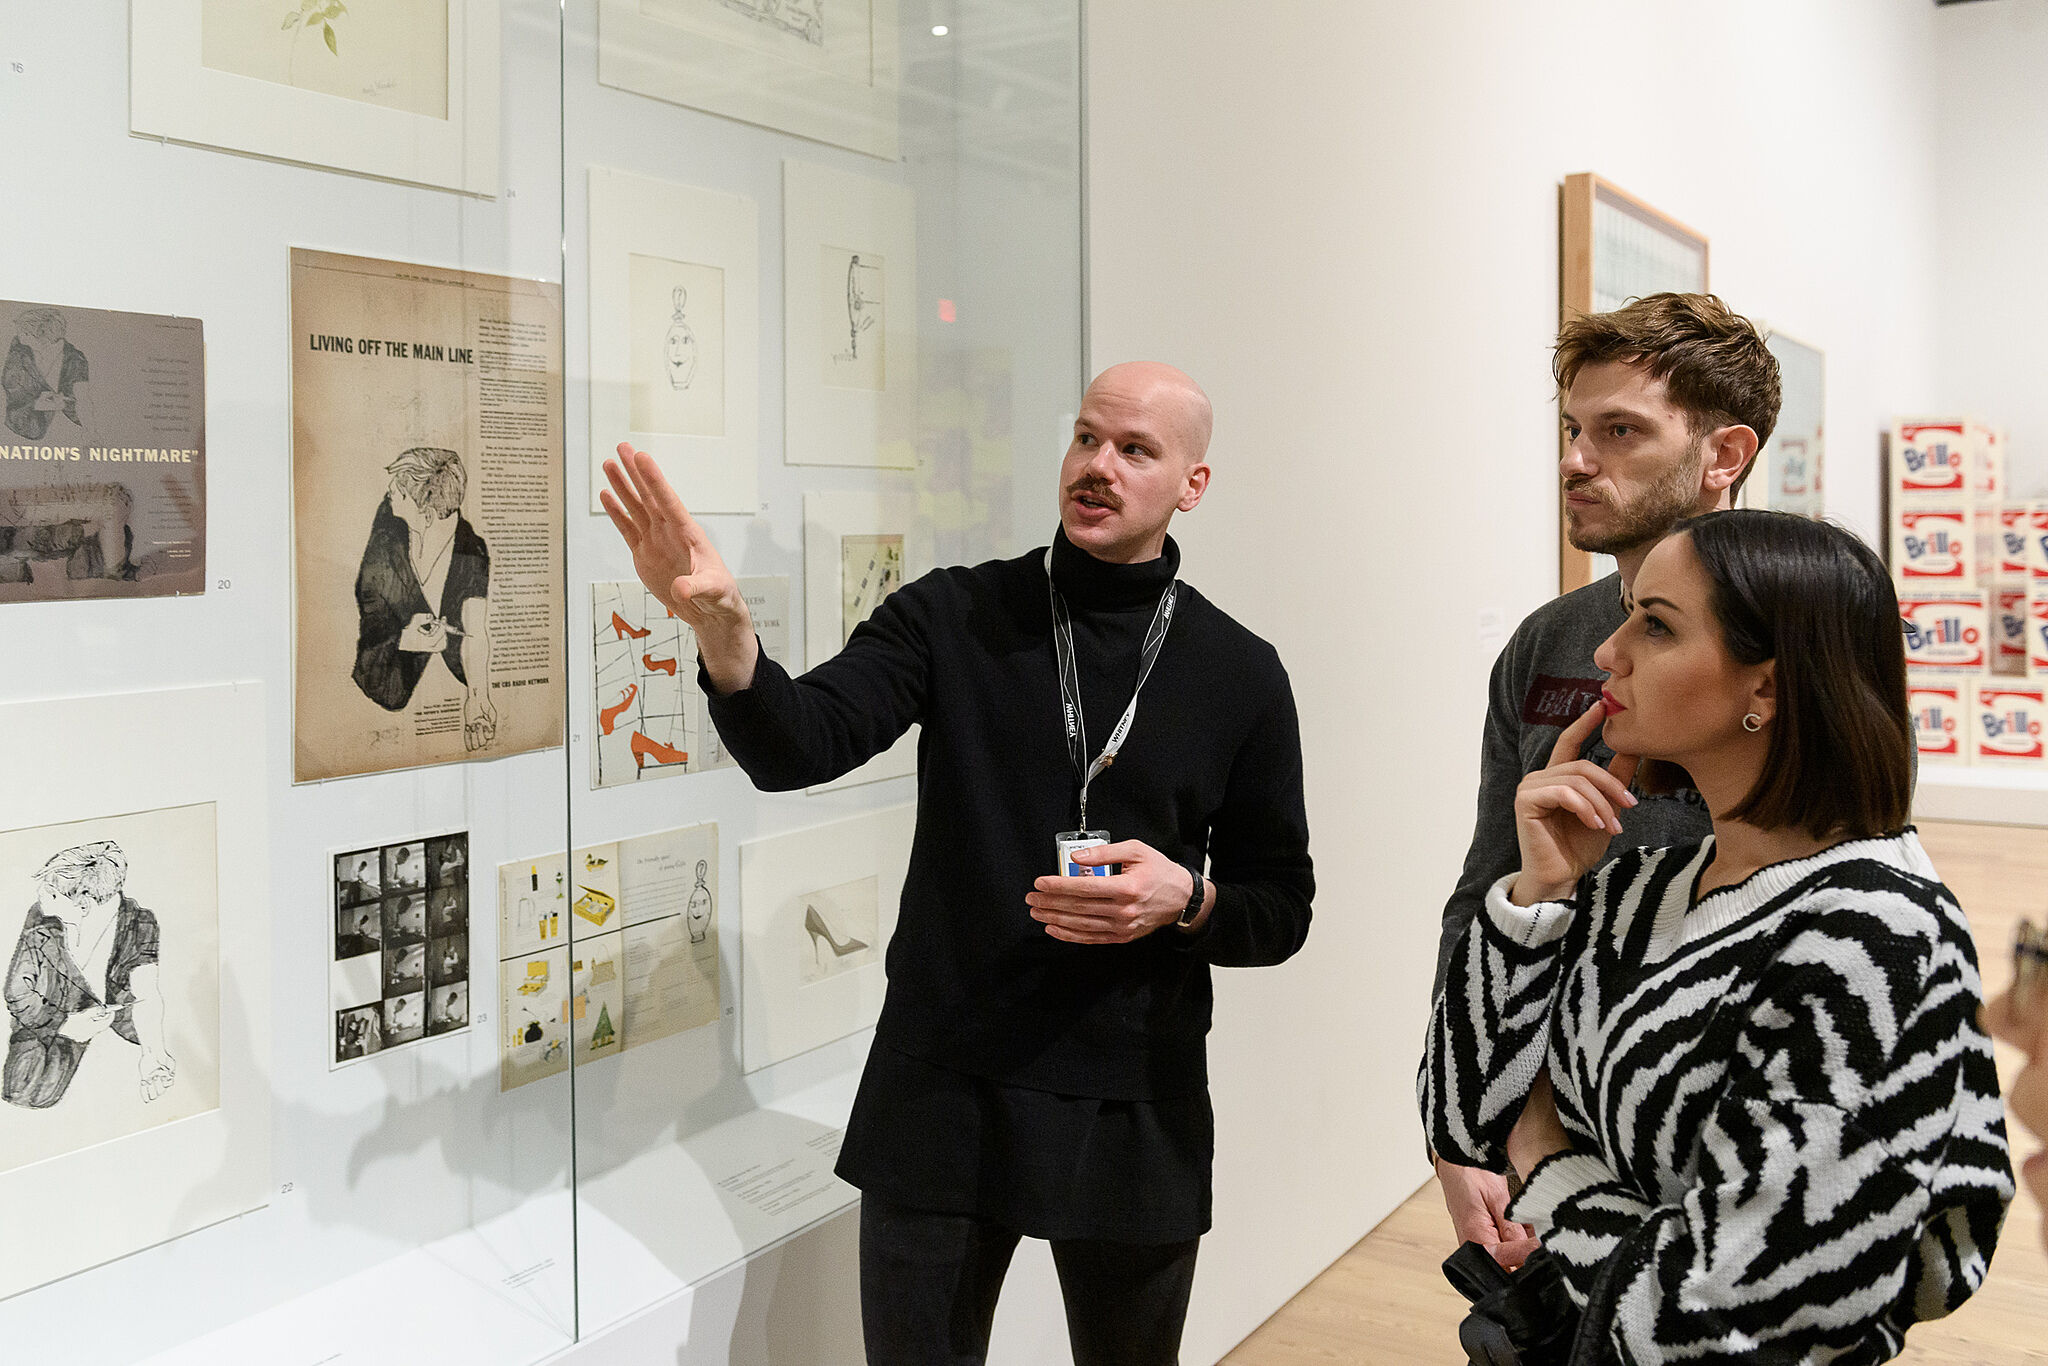 A person gestures towards a glass case of paper artworks while two other people look at the work.